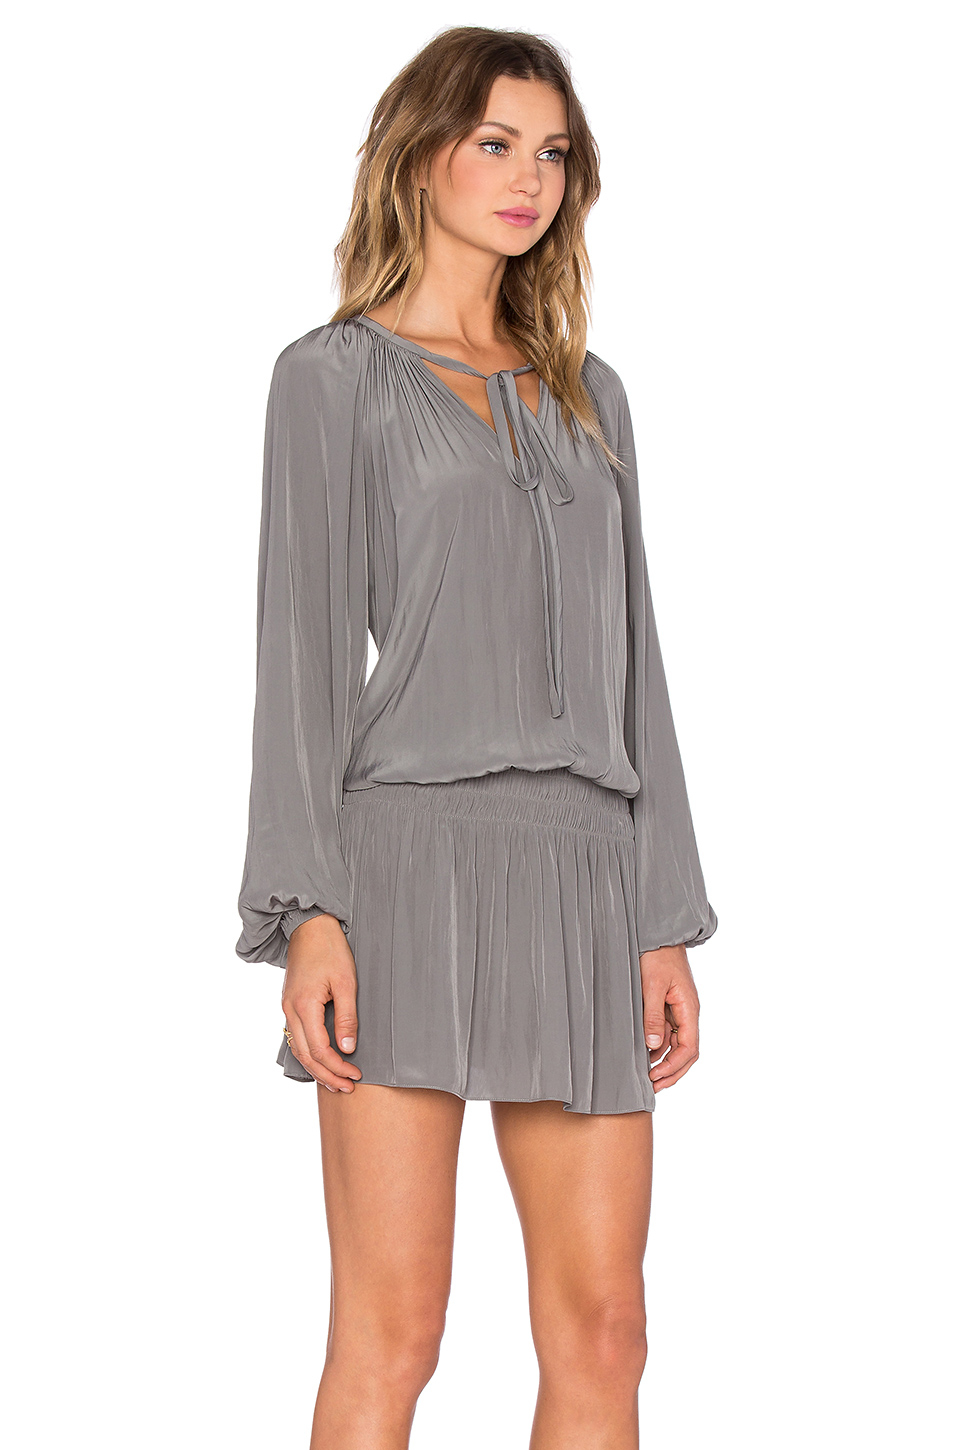 41e22a0e4c9ef Lyst - Ramy Brook Paris Dress in Gray